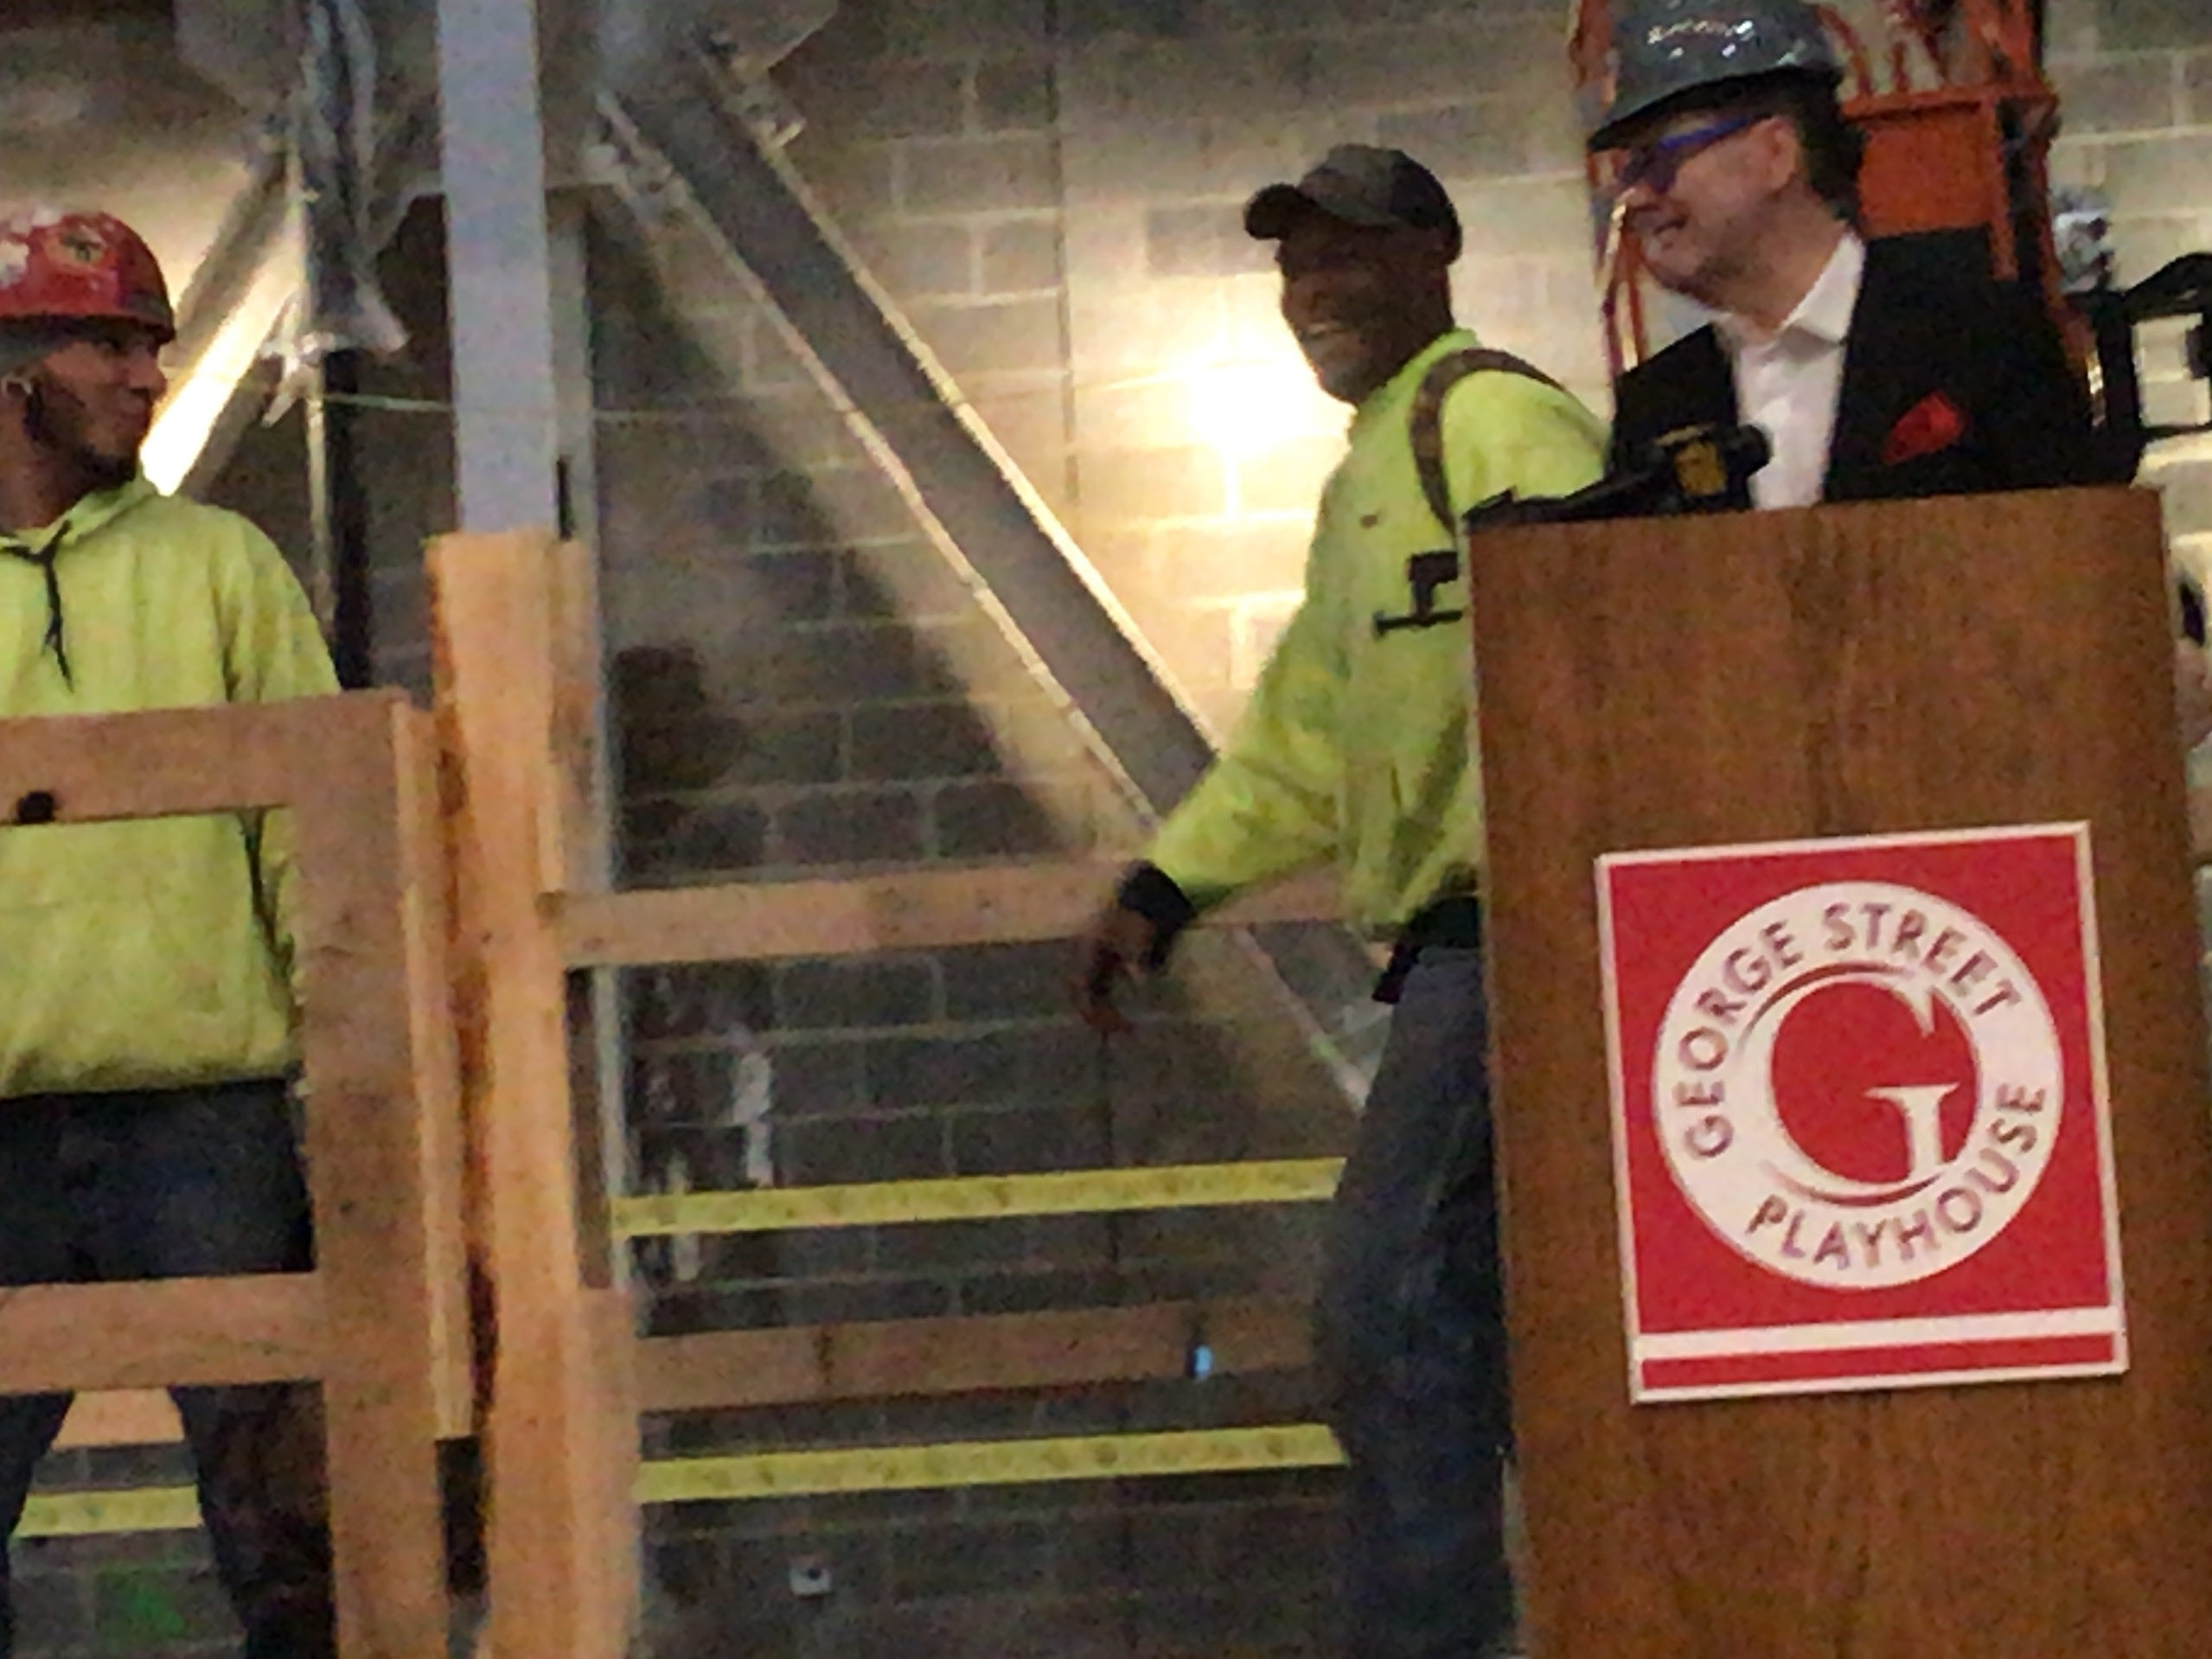 George Street Playhouse Artistic Director David Saint jokes with construction workers at the emerging New Brunswick Performing Arts Center, scheduled to open in September. The Playhouse's inaugural season in the new venue will begin in October.